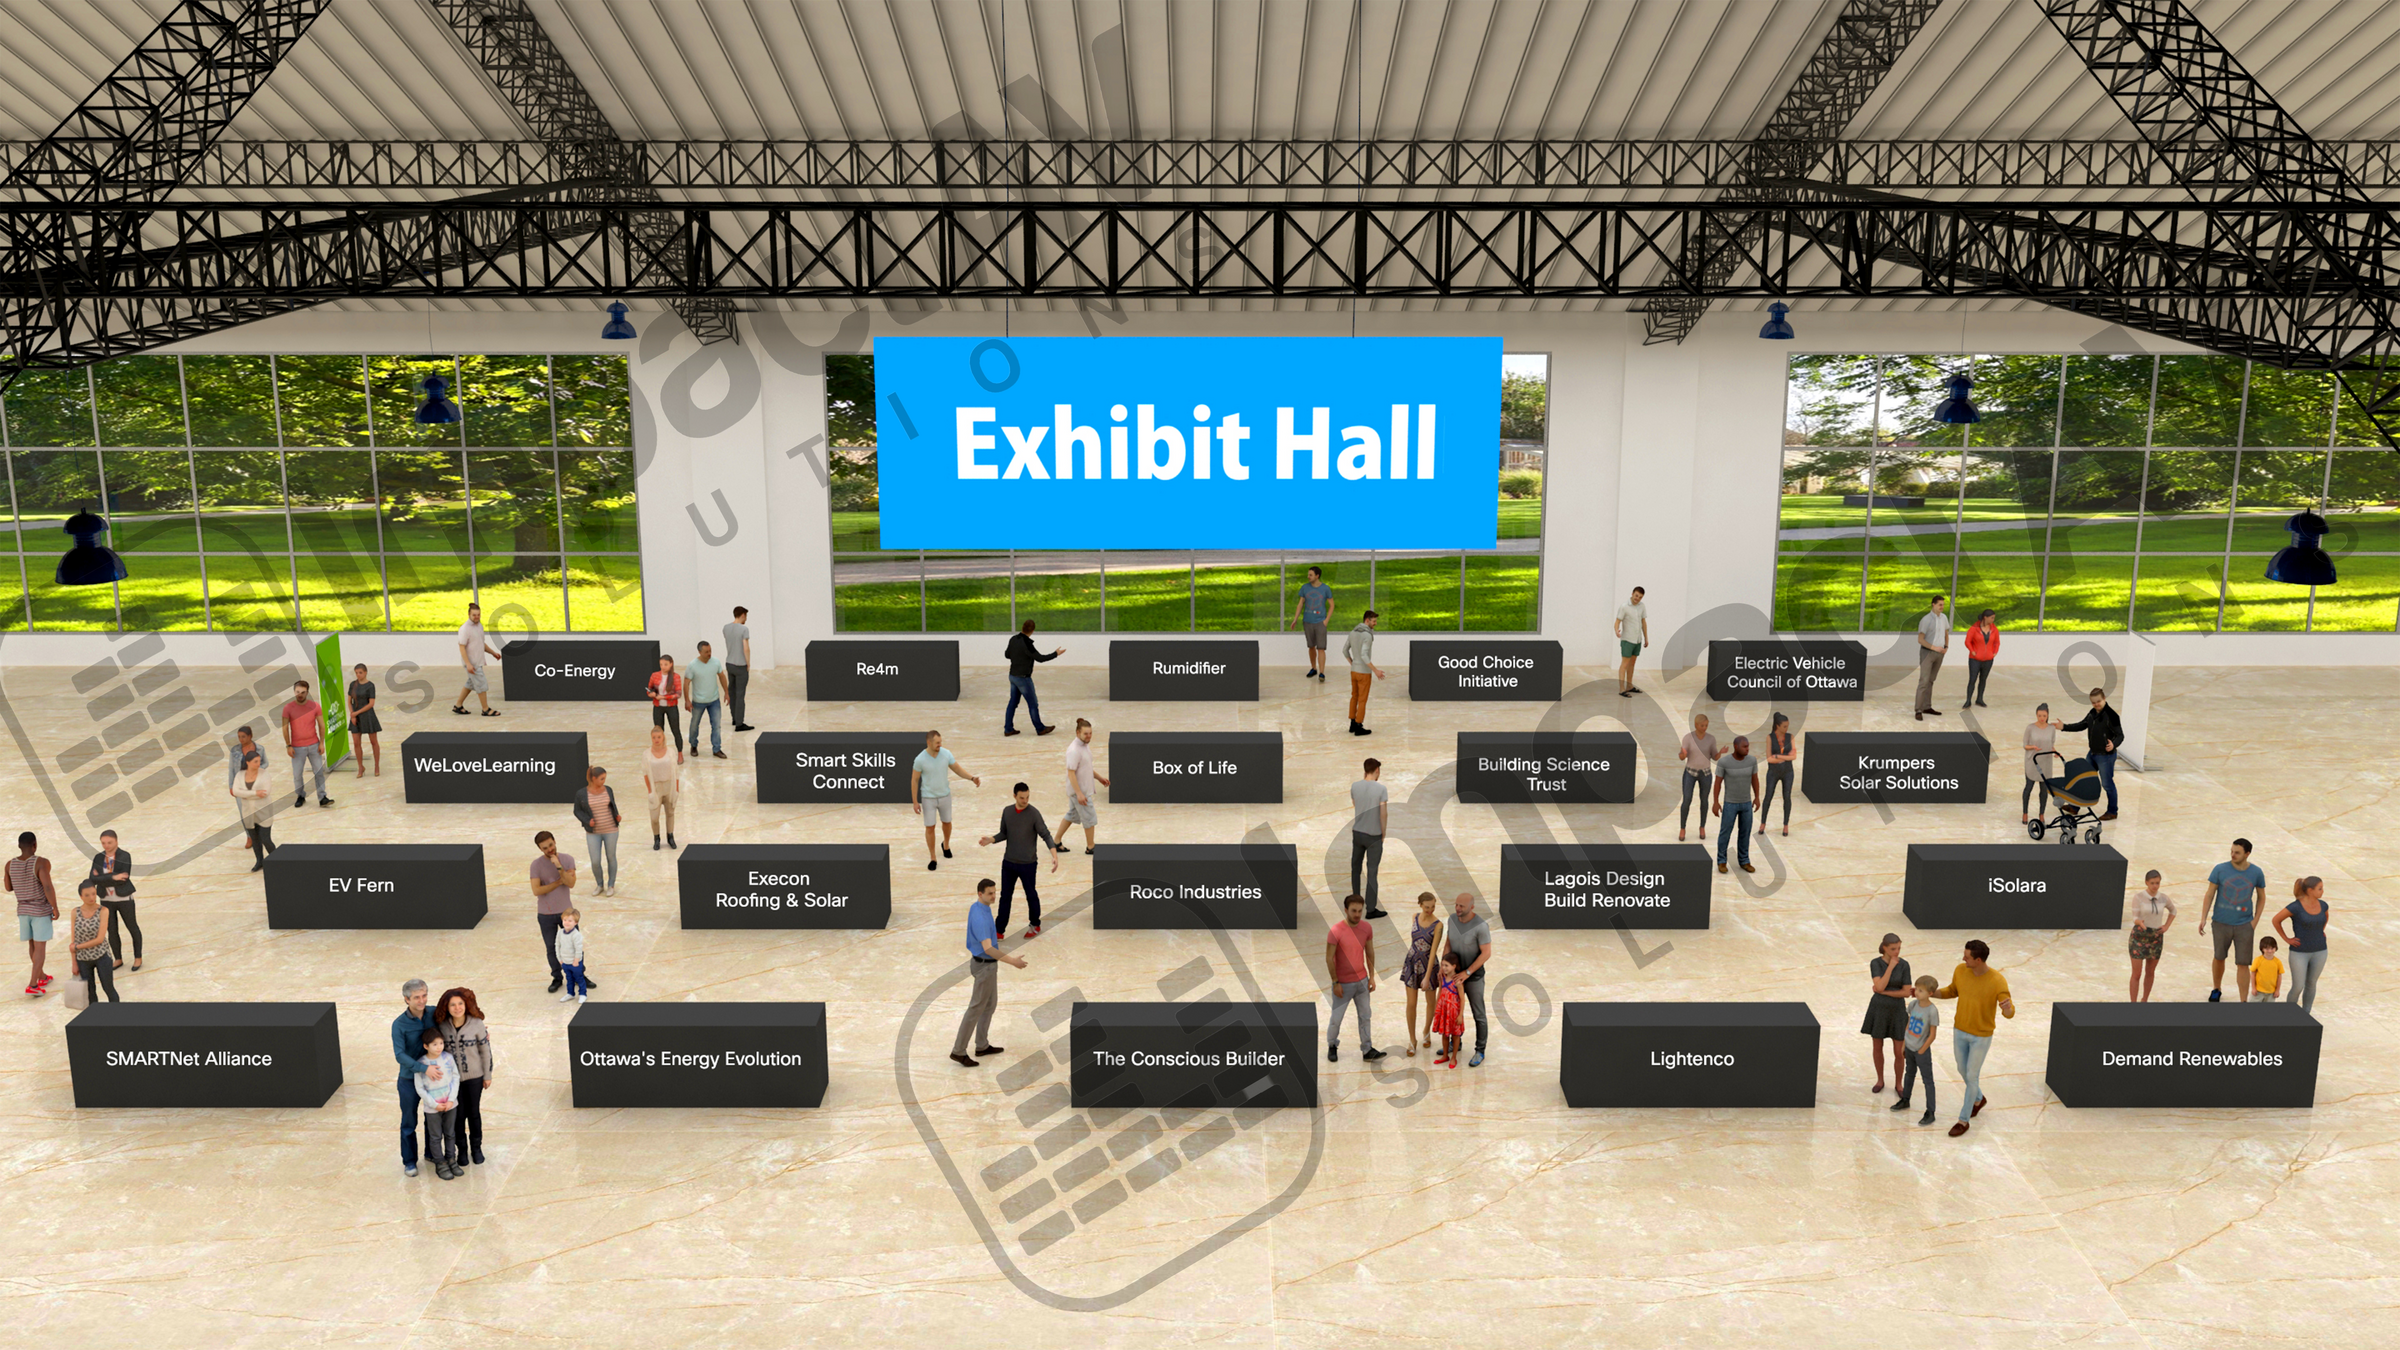 SNA Exhibition Hall